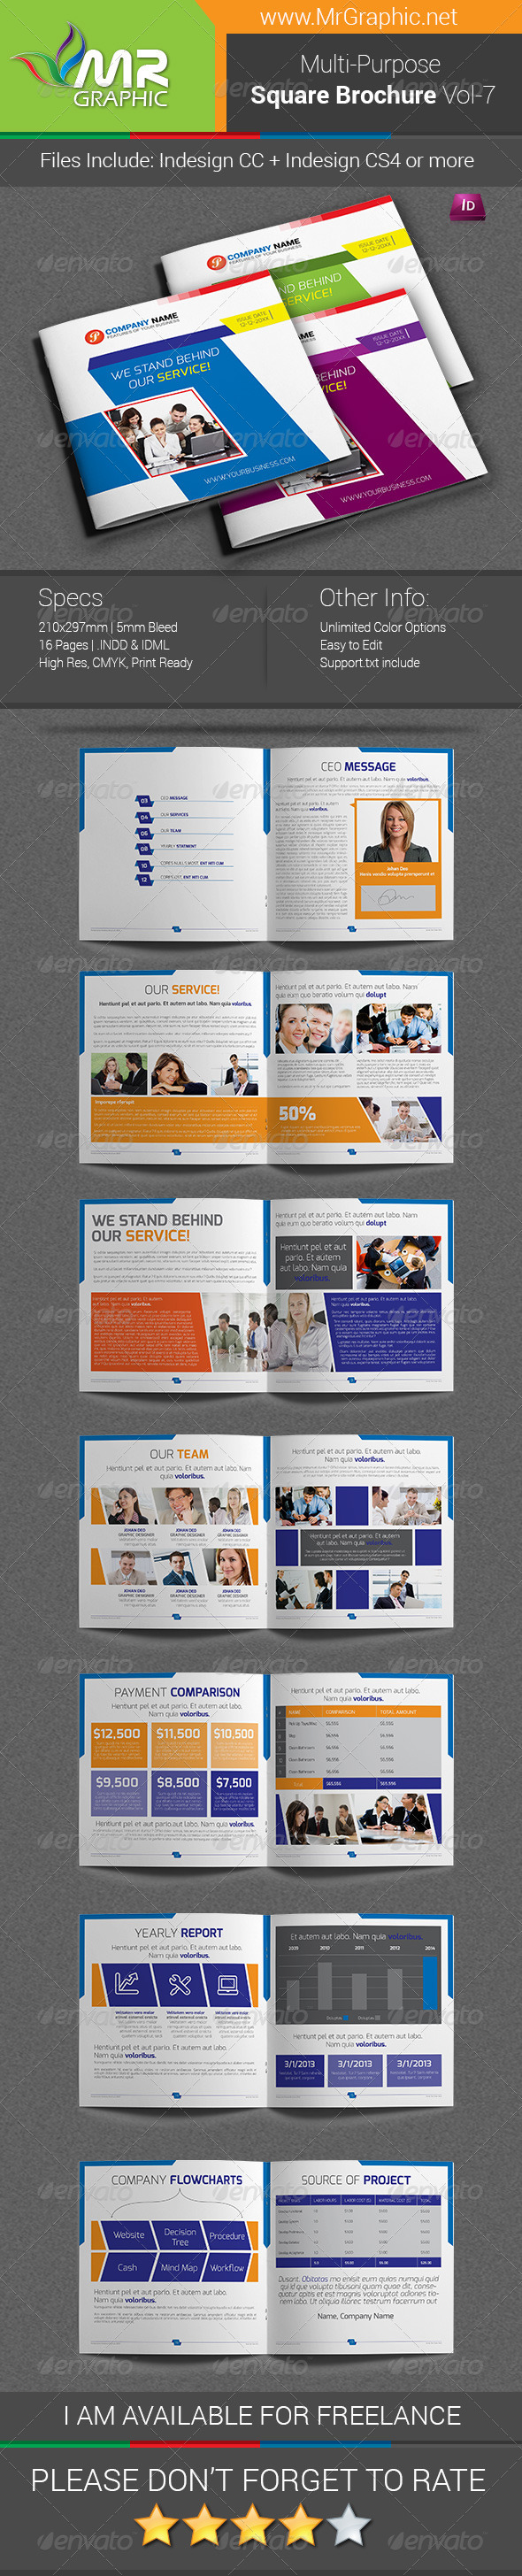 Multipurpose Square Brochure Template Vol-07